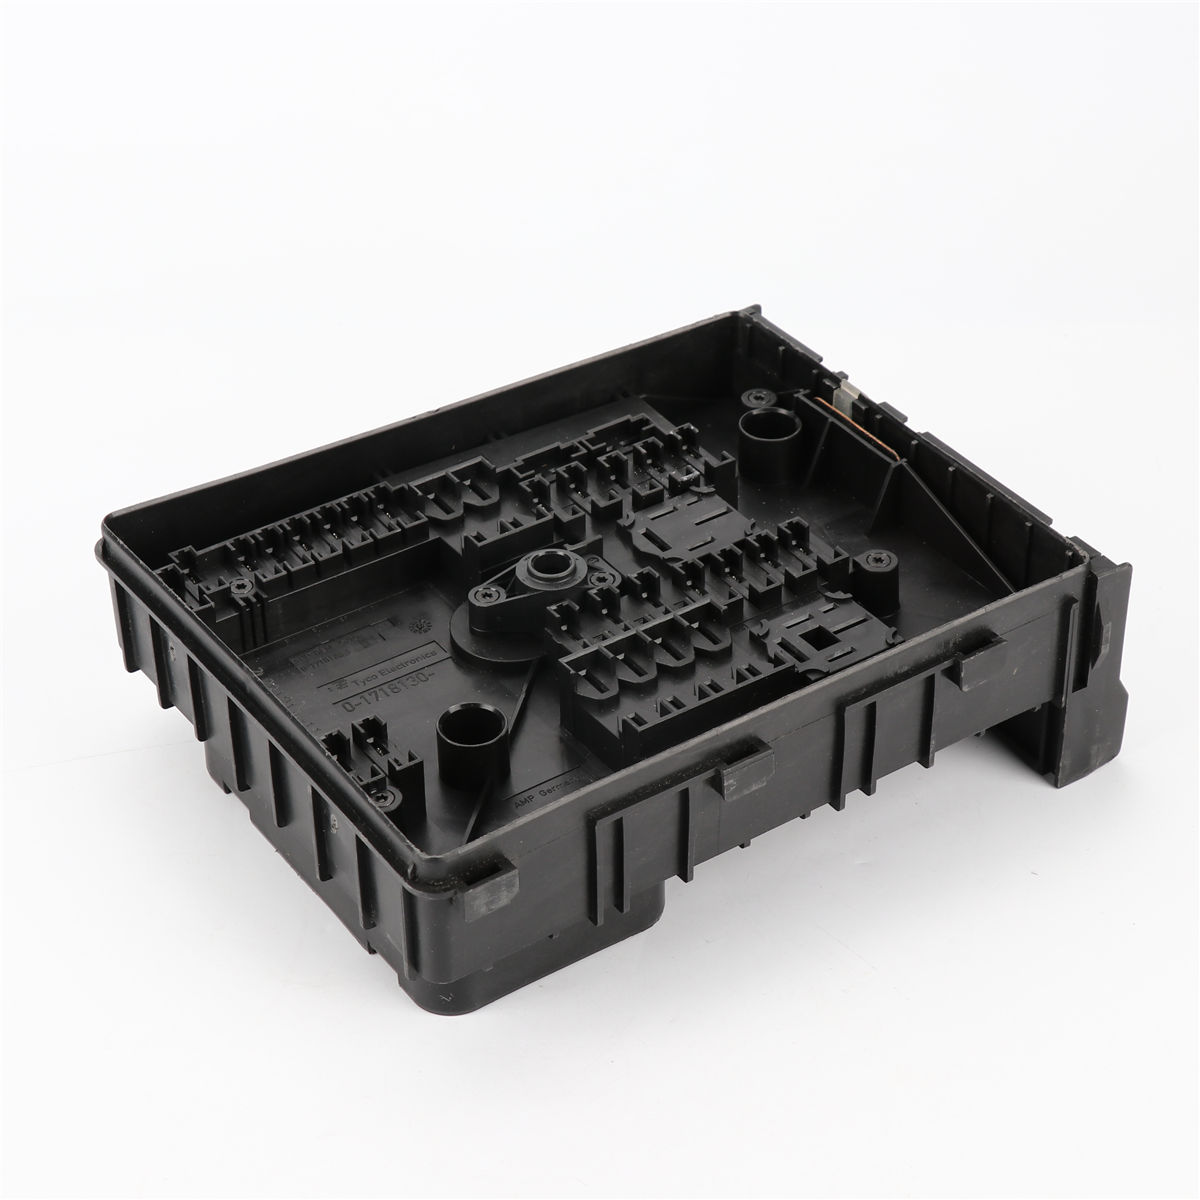 medium resolution of 1pcs relay fuse box board for vw jetta golf mk5 eos rabbit audi a3 seat skoda 1k0 937 125 d